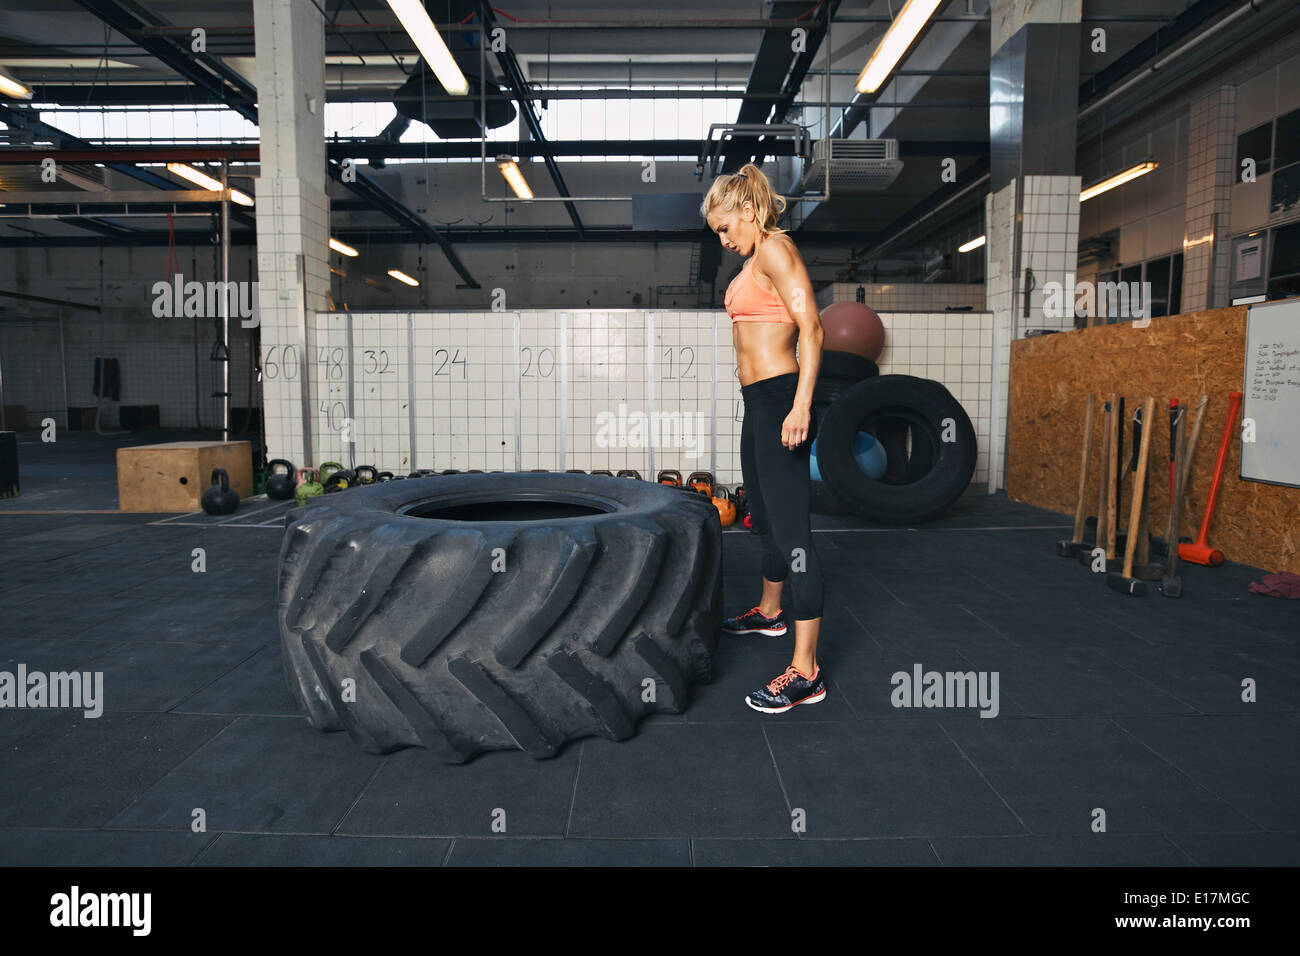 Strong young woman athlete standing and looking at huge tire at gym. Fit female athlete performing tire flipping exercise. - Stock Image